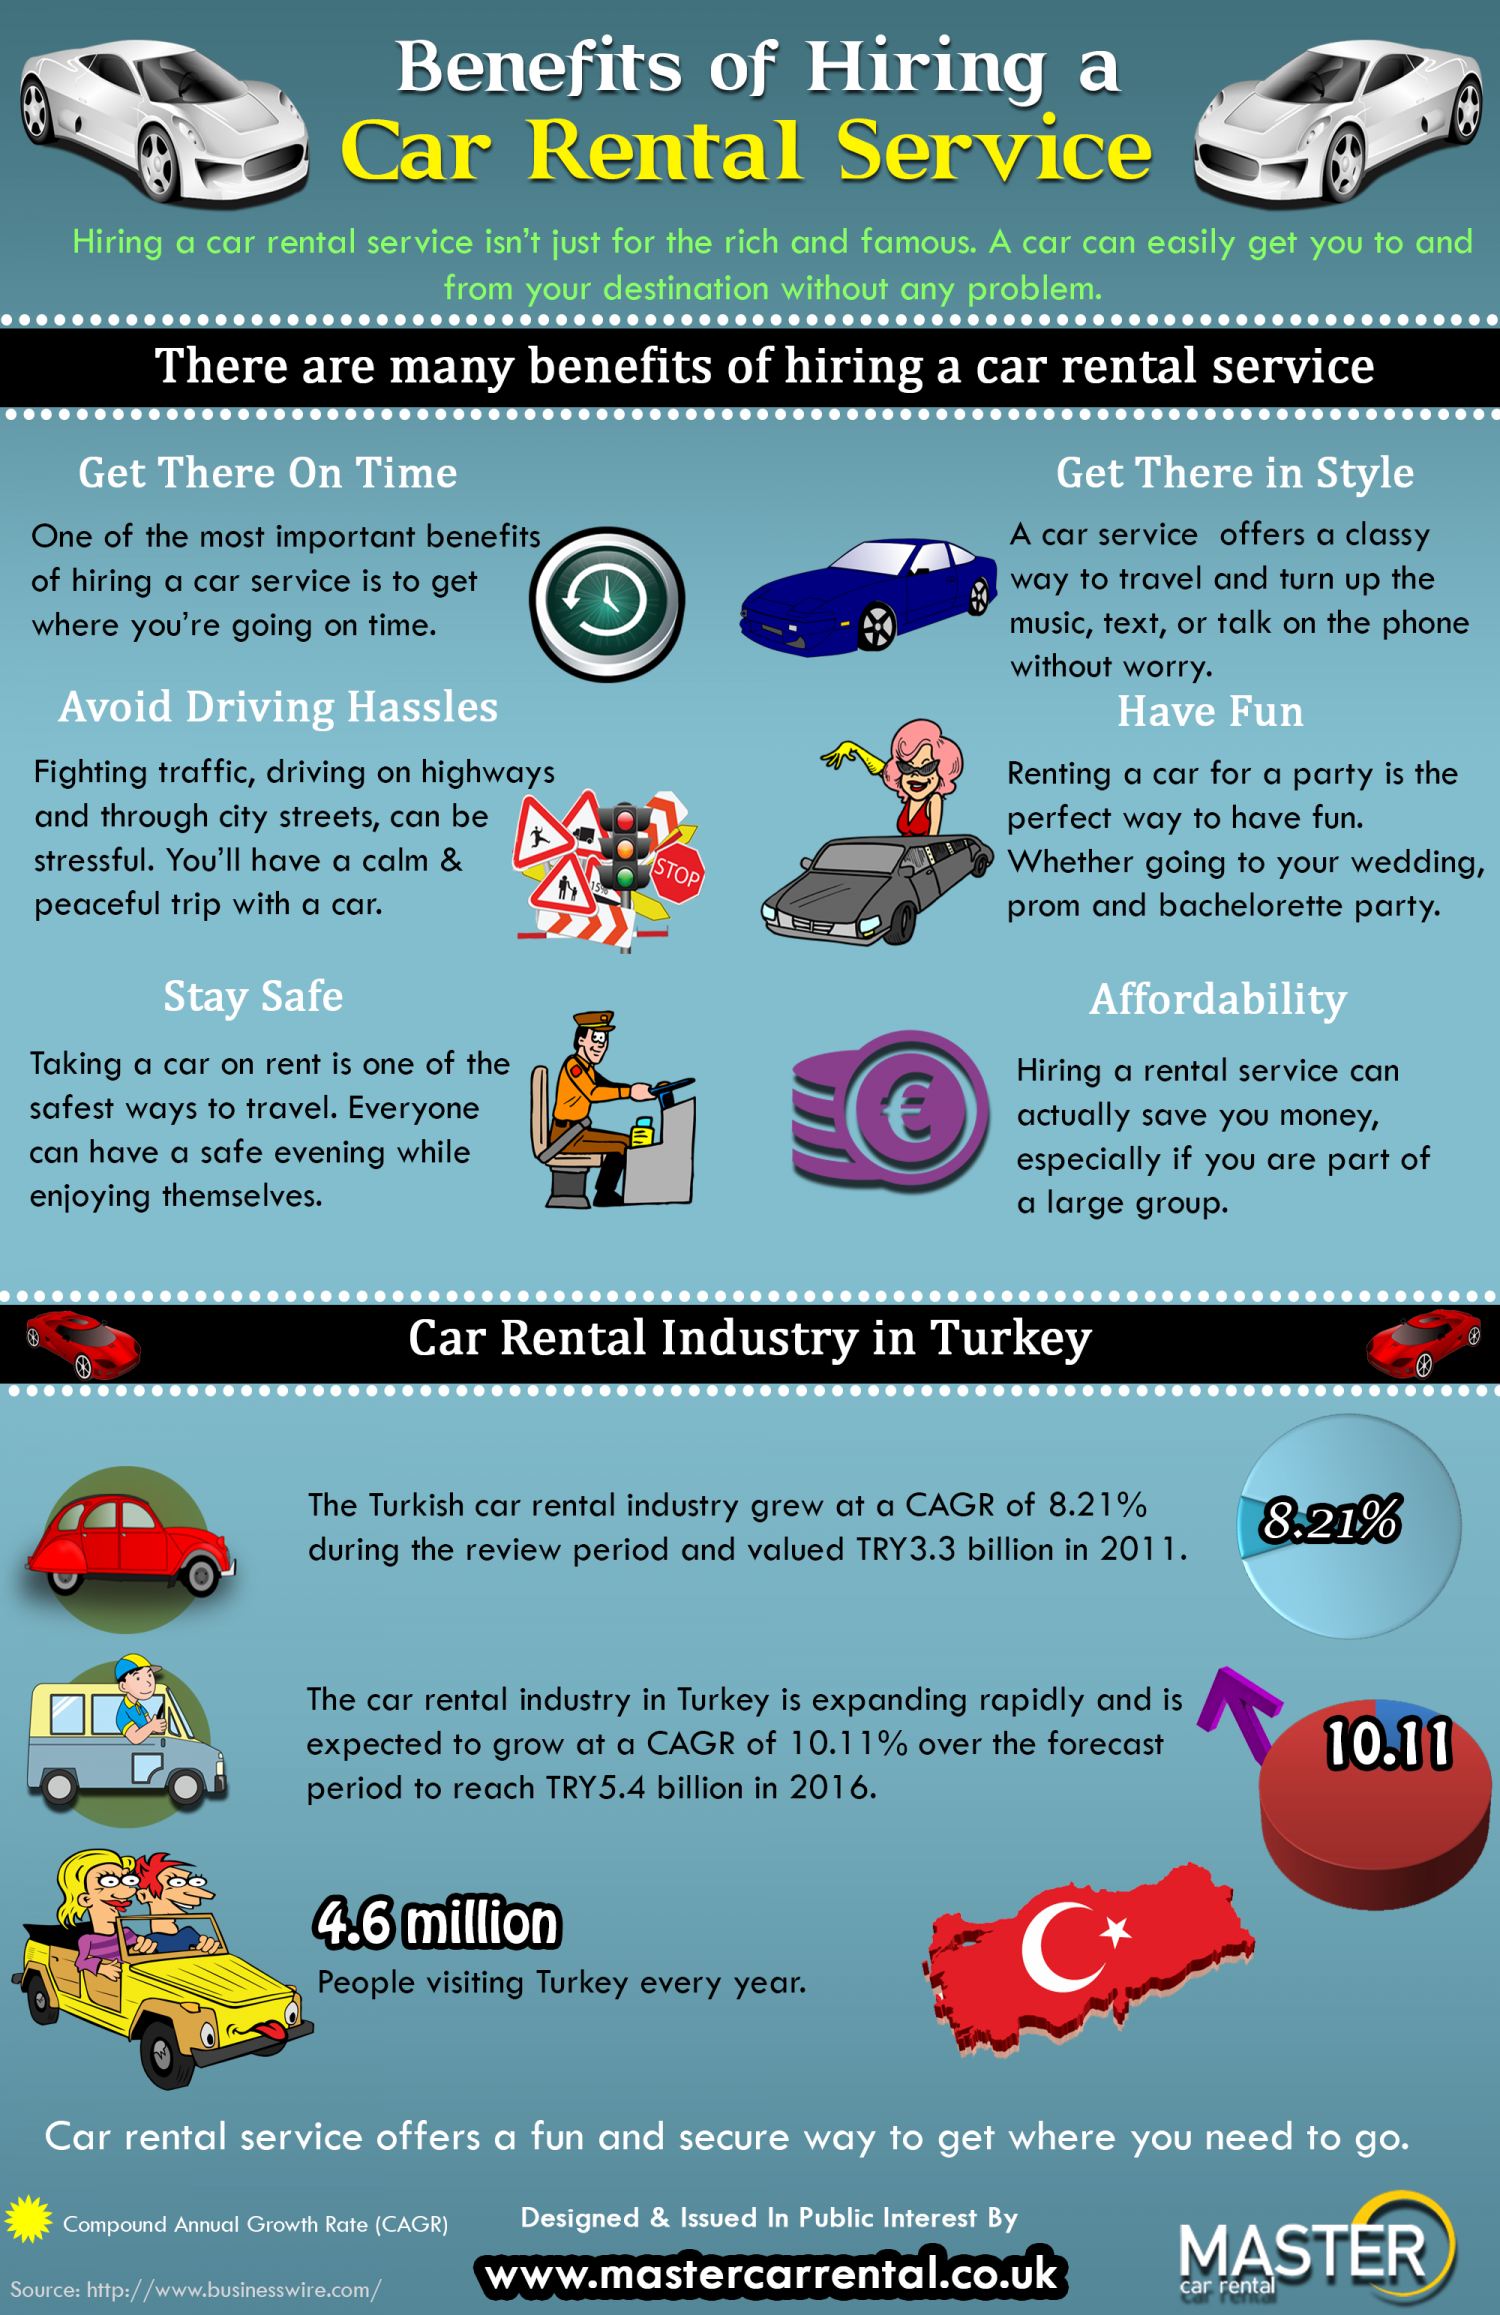 Benefits of hiring a car rental service infographic